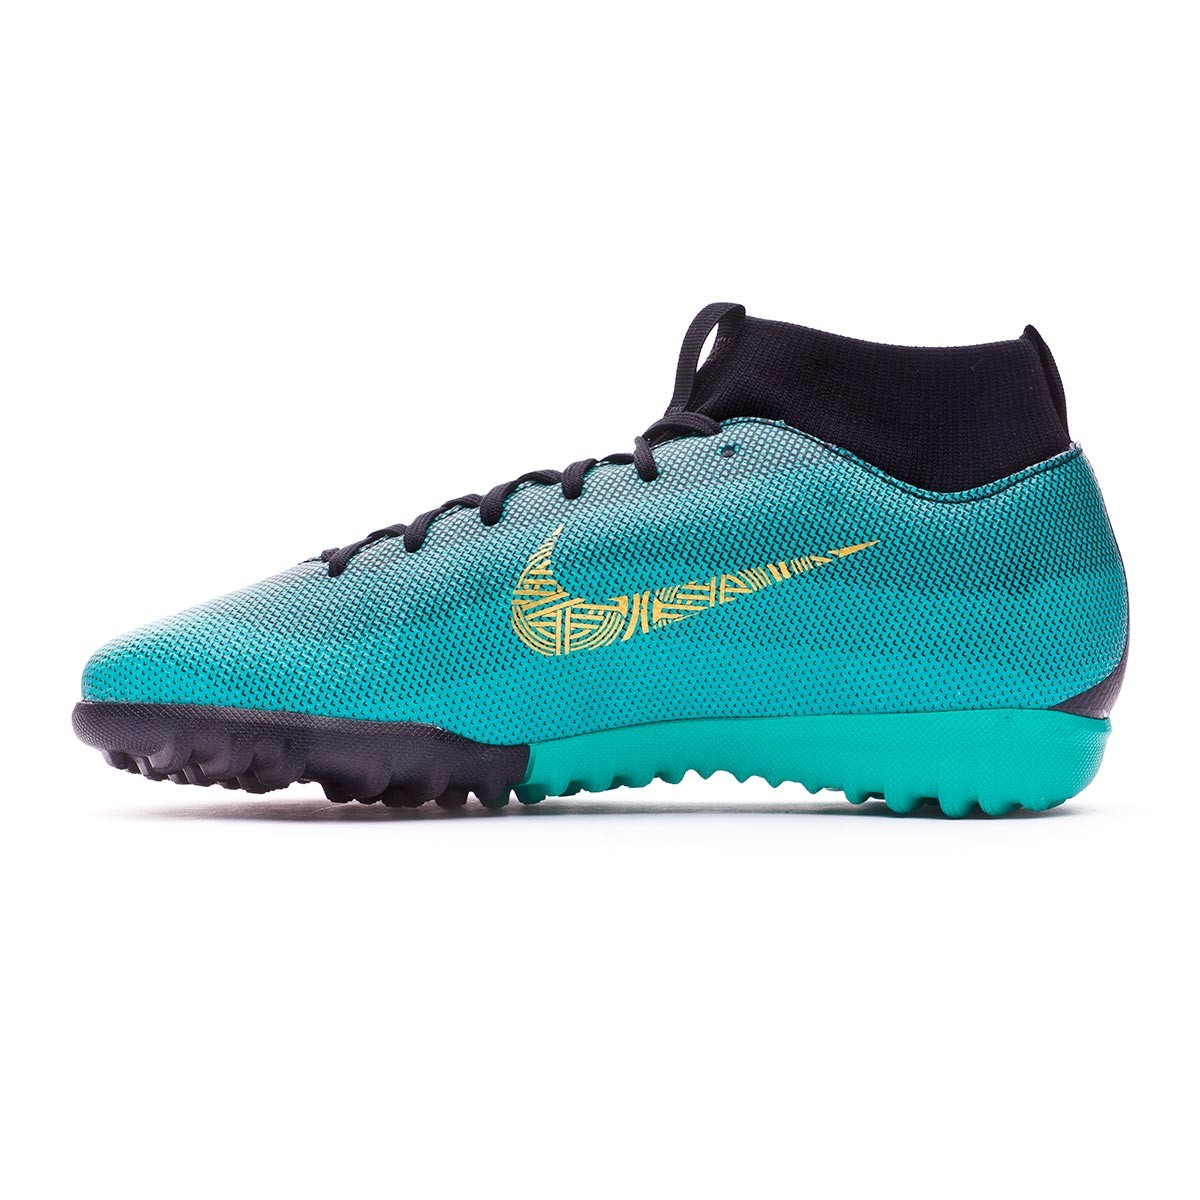 sports shoes ada1e 1ae4d Zapatilla Nike Mercurial Superfly VI Academy GS CR7 Turf Niño Clear  jade-Metallic vivid gold-Black - Tienda de fútbol Fútbol Emotion